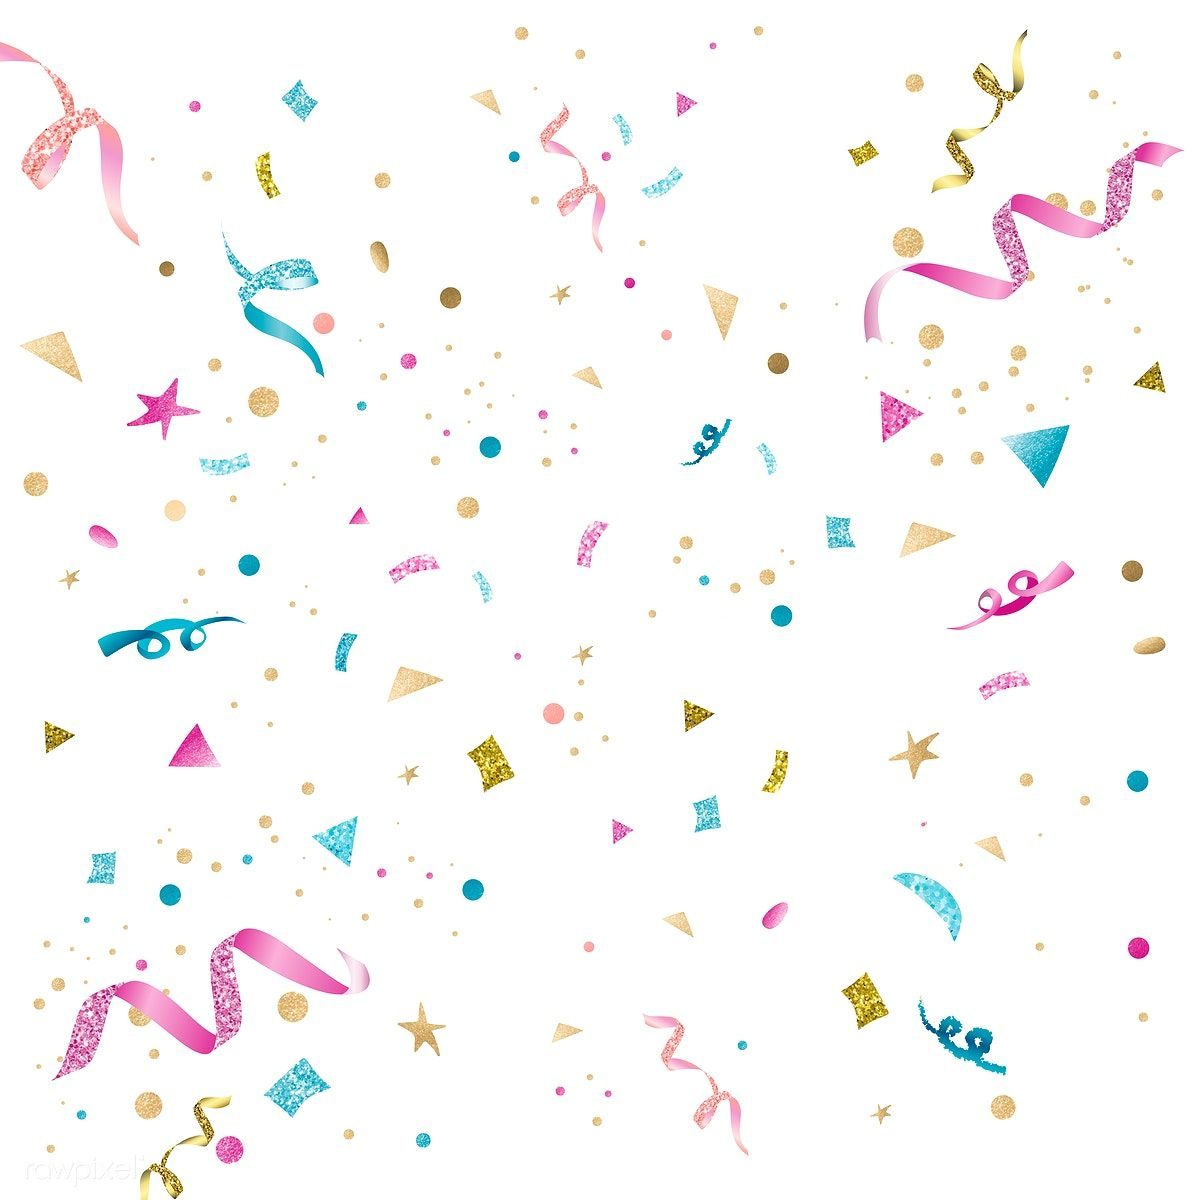 Download Premium Vector Of Pink And Blue Confetti Background Vector 553727 Confetti Background Confetti Background Wallpapers Birthday Background Wallpaper